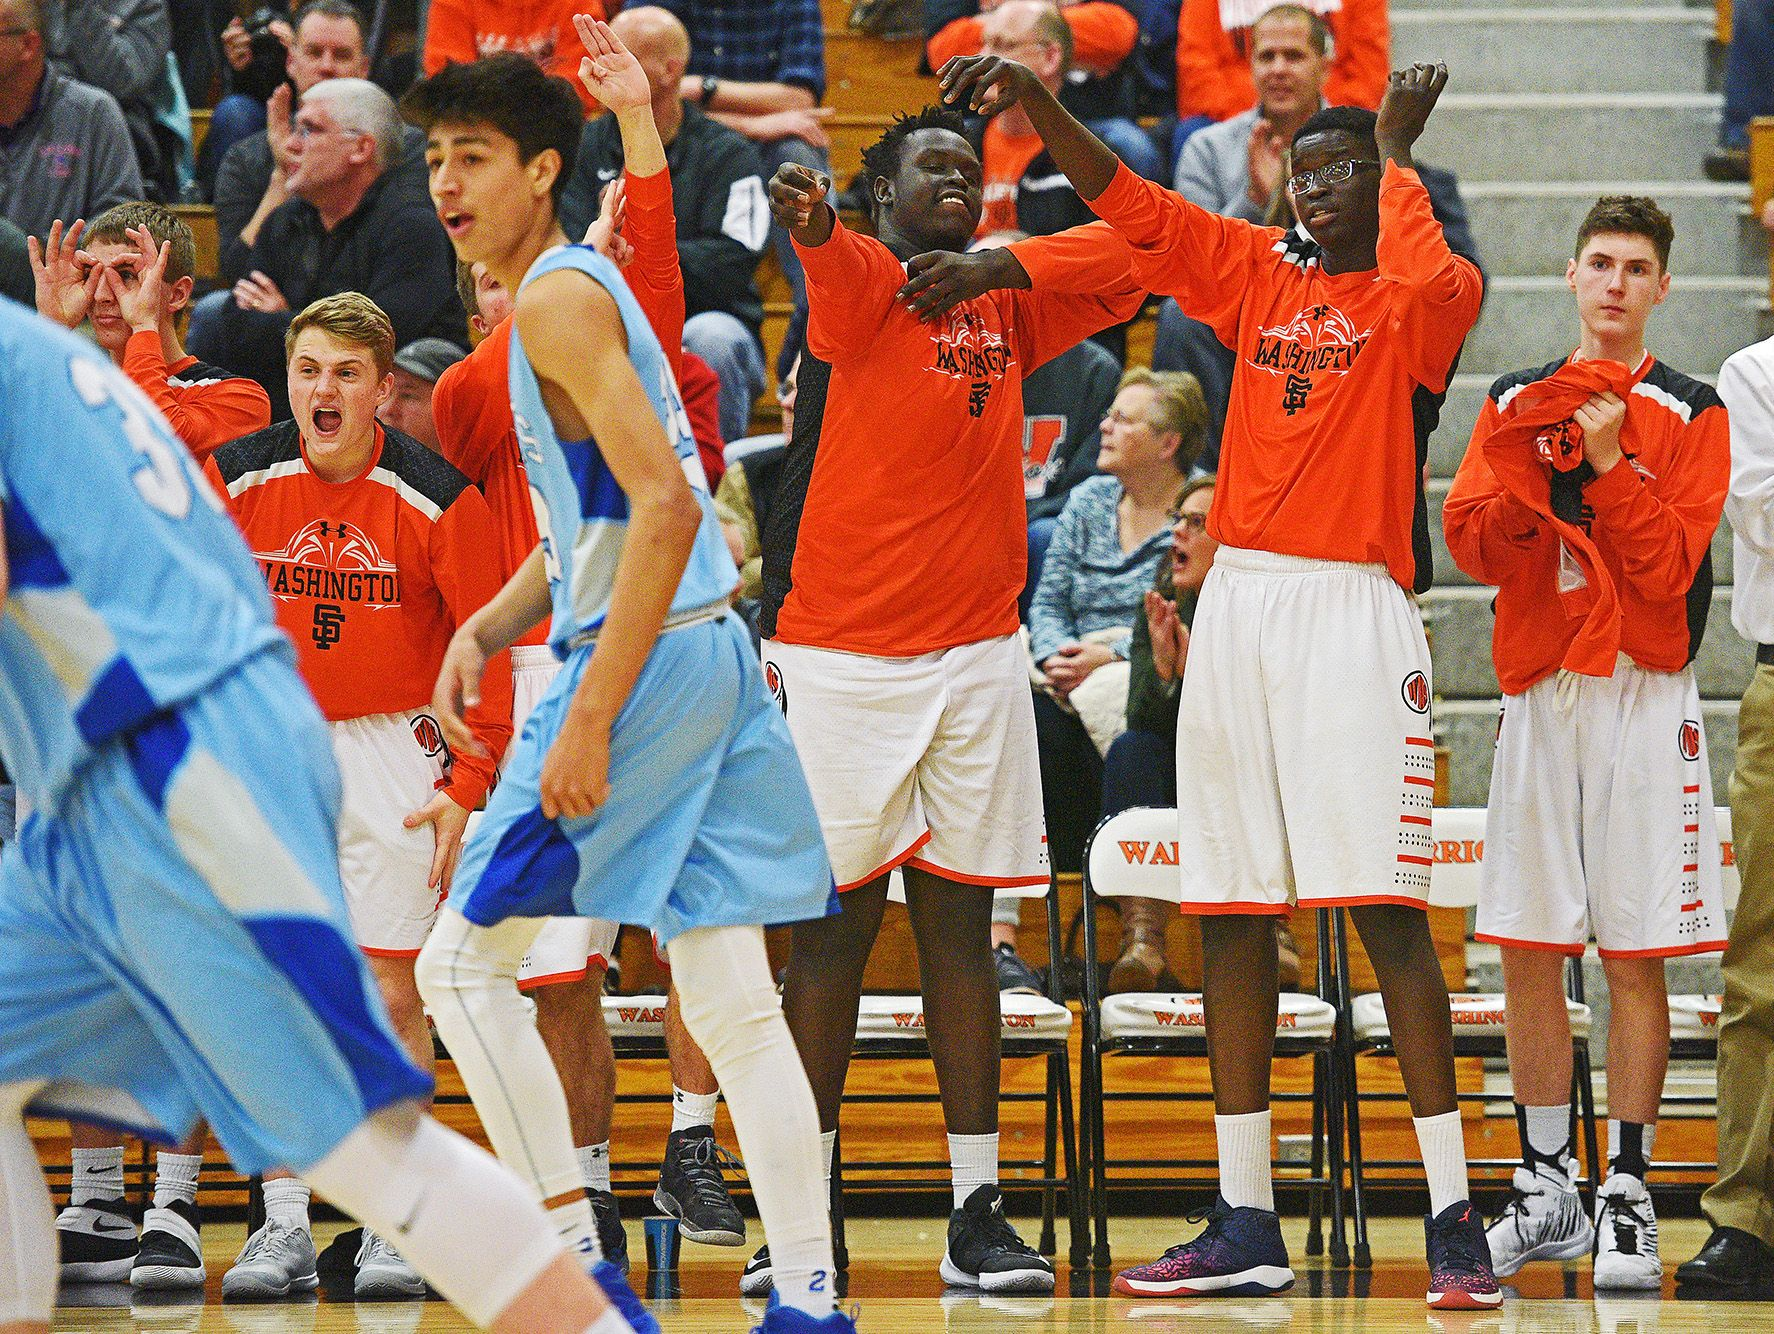 Washington players react from the bench after a teammate scored during a game against Rapid City Stevens Friday, Feb. 10, 2017, at Washington High School in Sioux Falls.